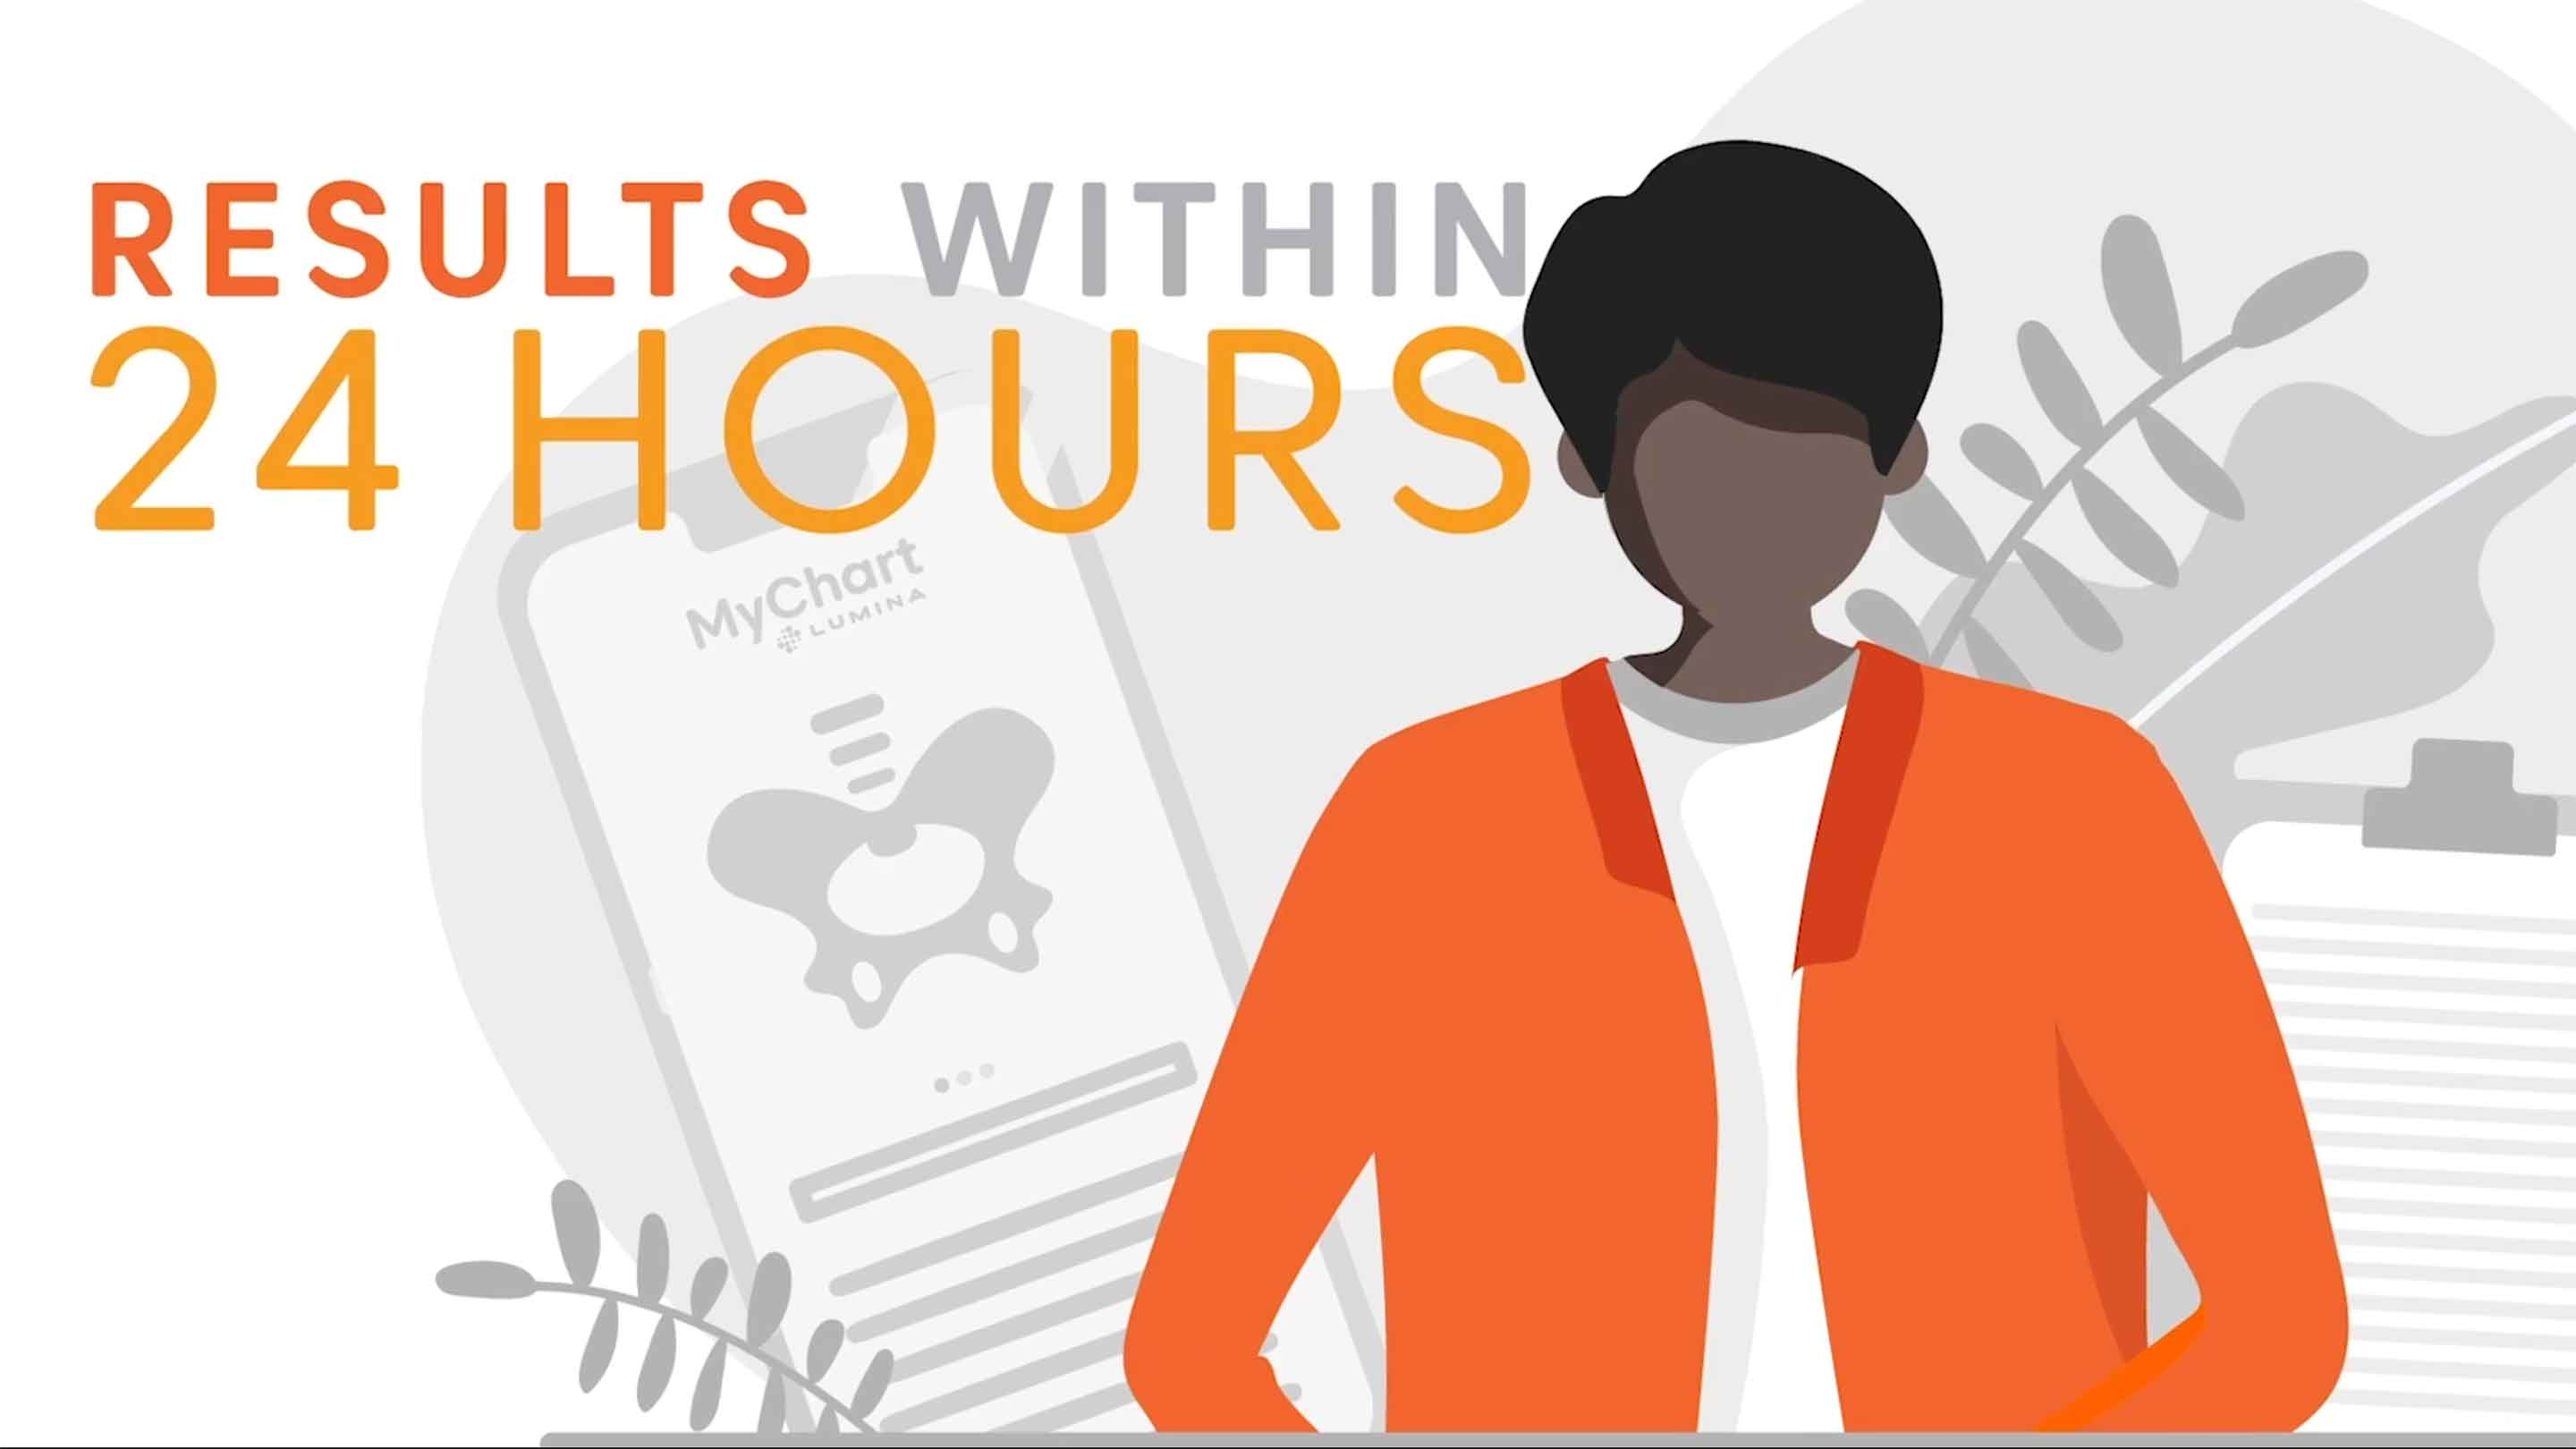 We deliver results within 24-hours